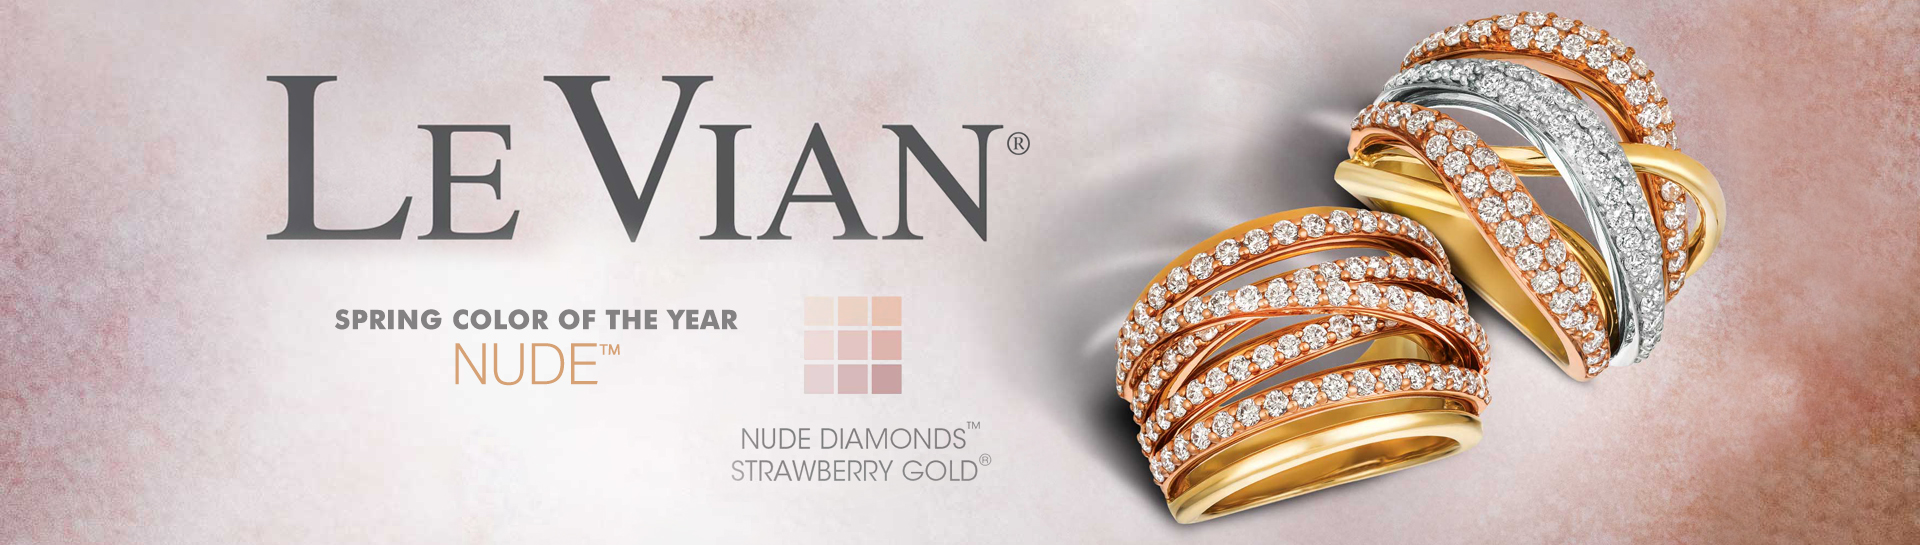 Le Vian Spring Color of the Year 2018